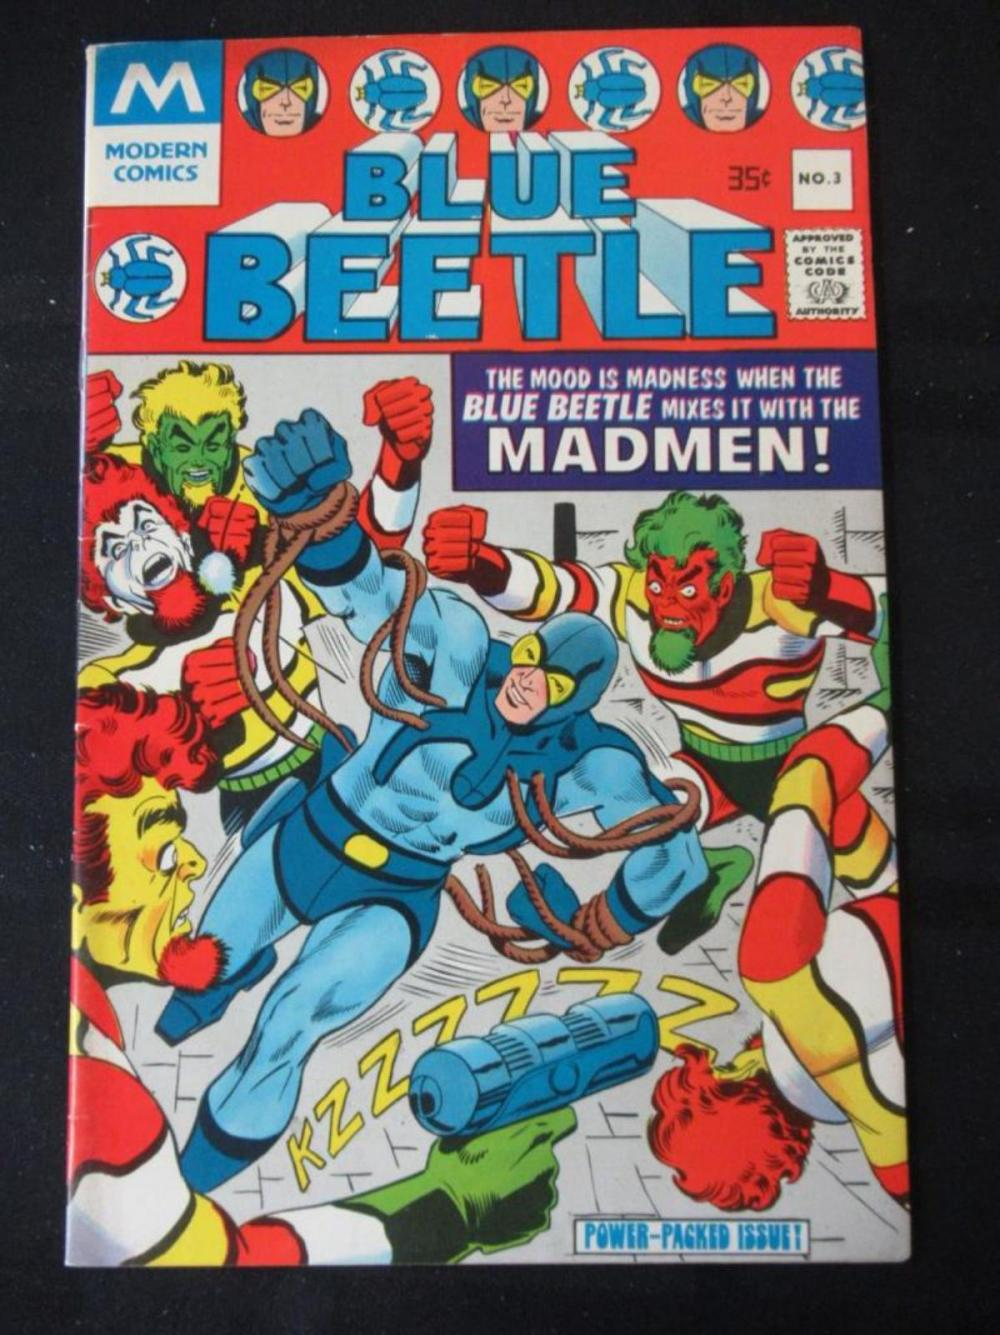 Blue Beetle 35c #3 Mixes it with the Madmen